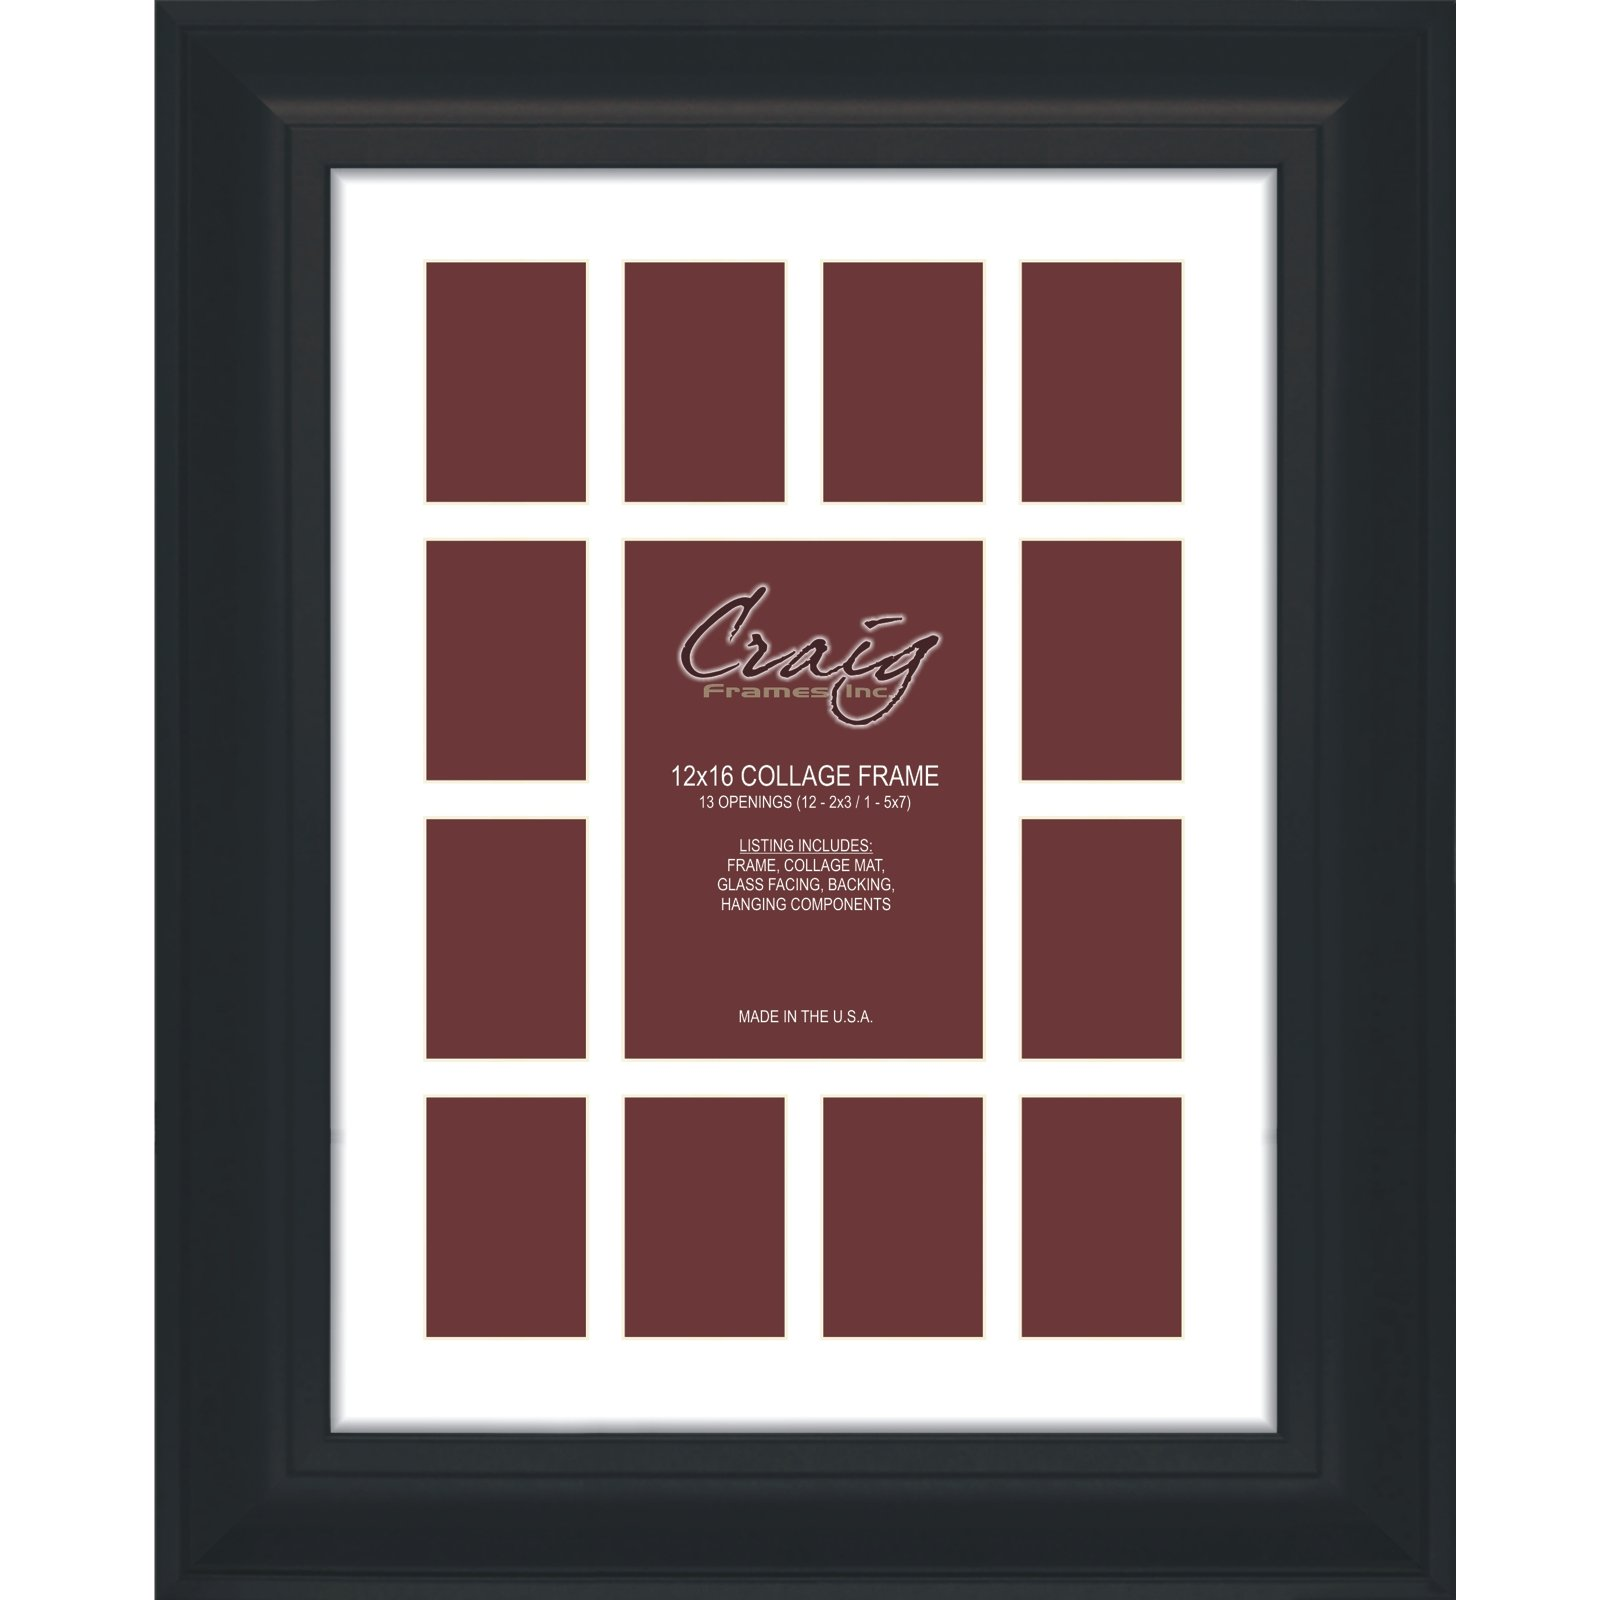 Craig Frames 21834700BK 12 by 16-Inch Black Picture Frame, Single White Collage Mat with 13 Openings